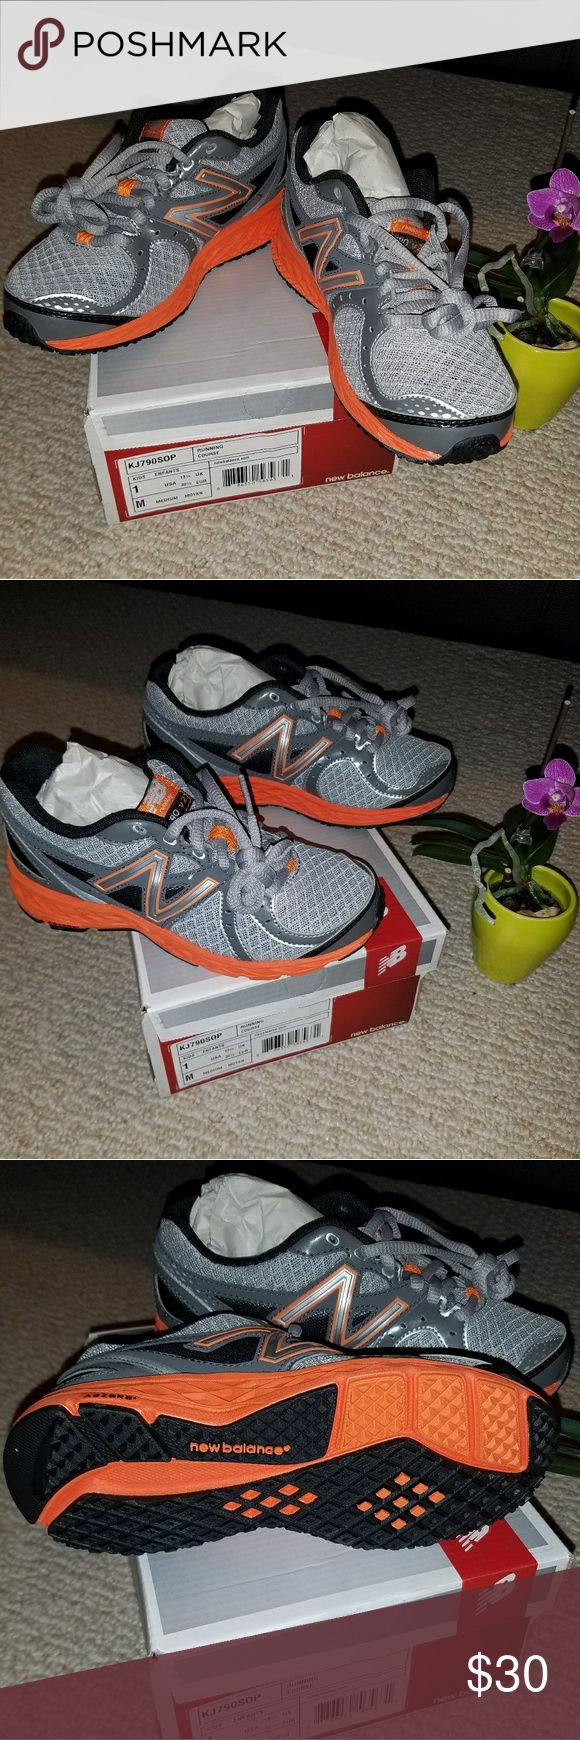 New balance kid running shoes Brand new, perfect condition,  very light and super  comfortable !! New Balance Shoes Sneakers